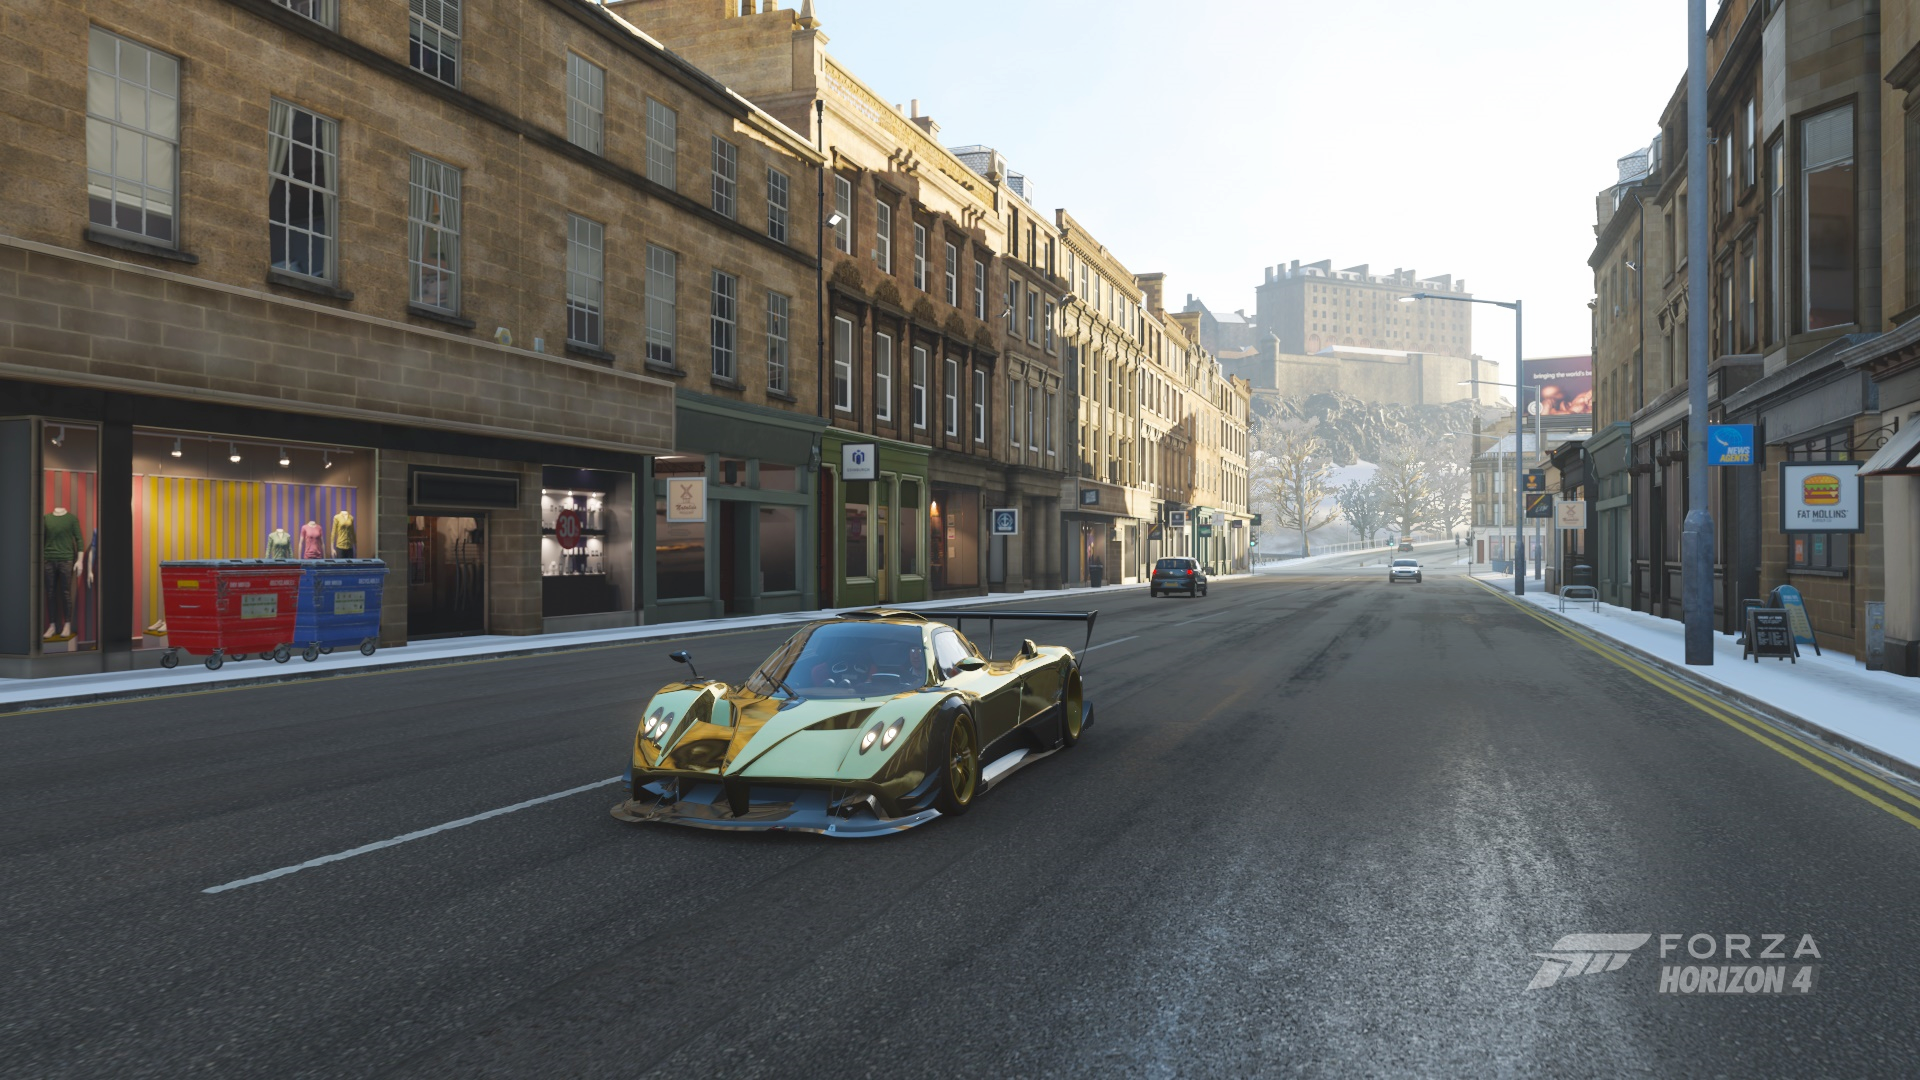 Forza Horizon 4 Review: A fresh map with a new approach to